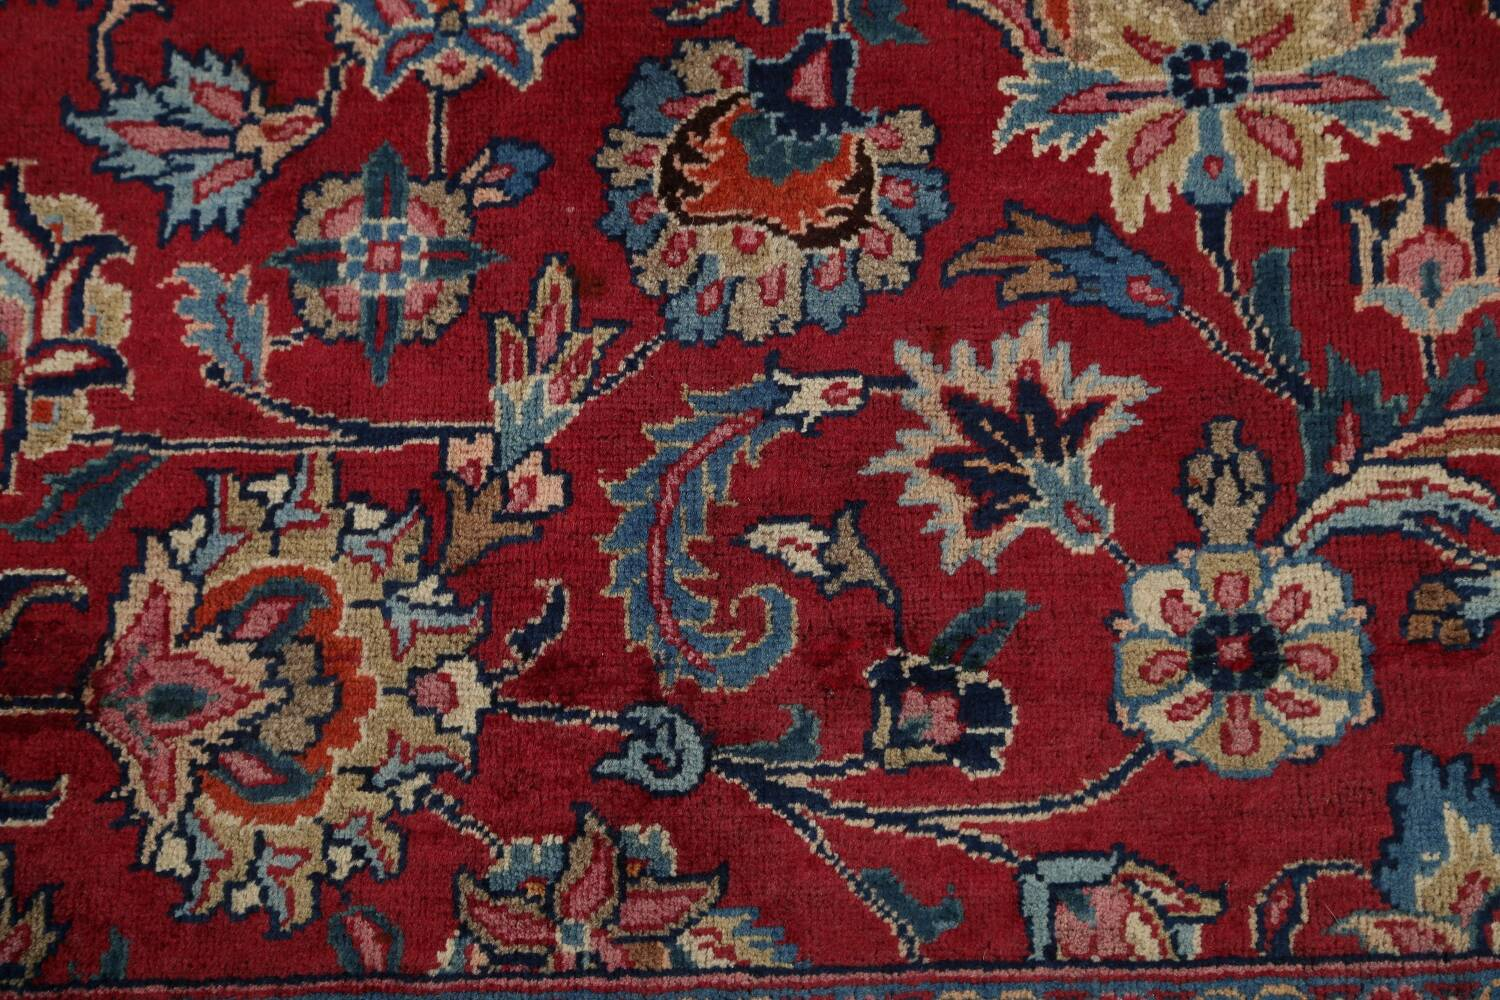 Antique Floral Vegetable Dye Mashad Persian Area Rug 10x13 image 10